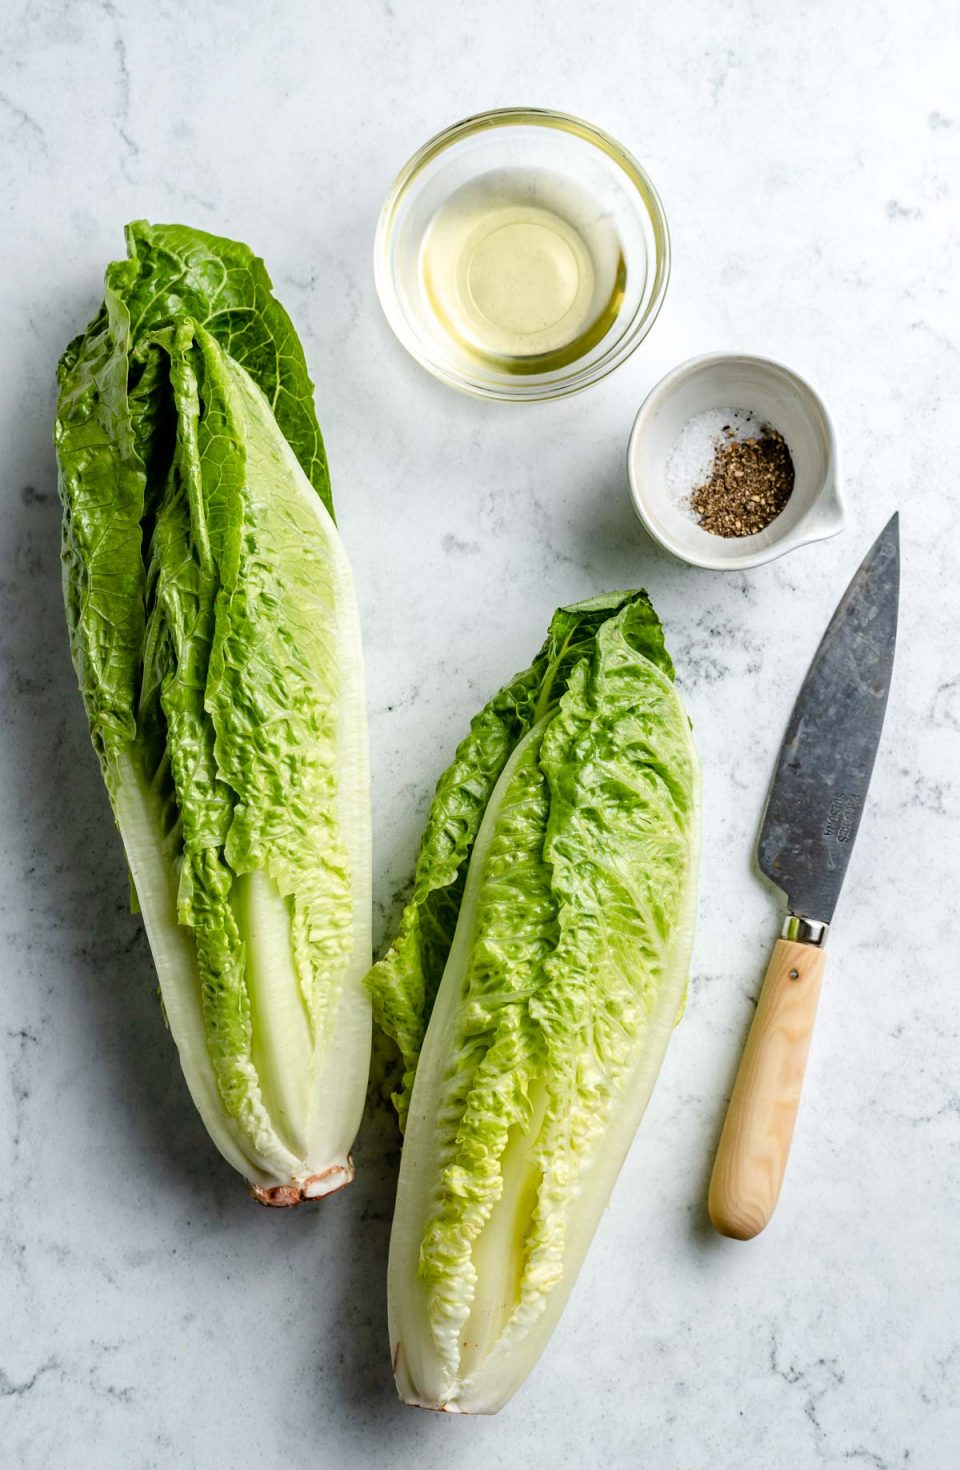 Grilled lettuce ingredients arranged on a white & grey marble surface - two heads of fresh romaine lettuce, avocado oil, kosher salt, & ground black pepper. A pairing knife rests on the surface next to the ingredients.